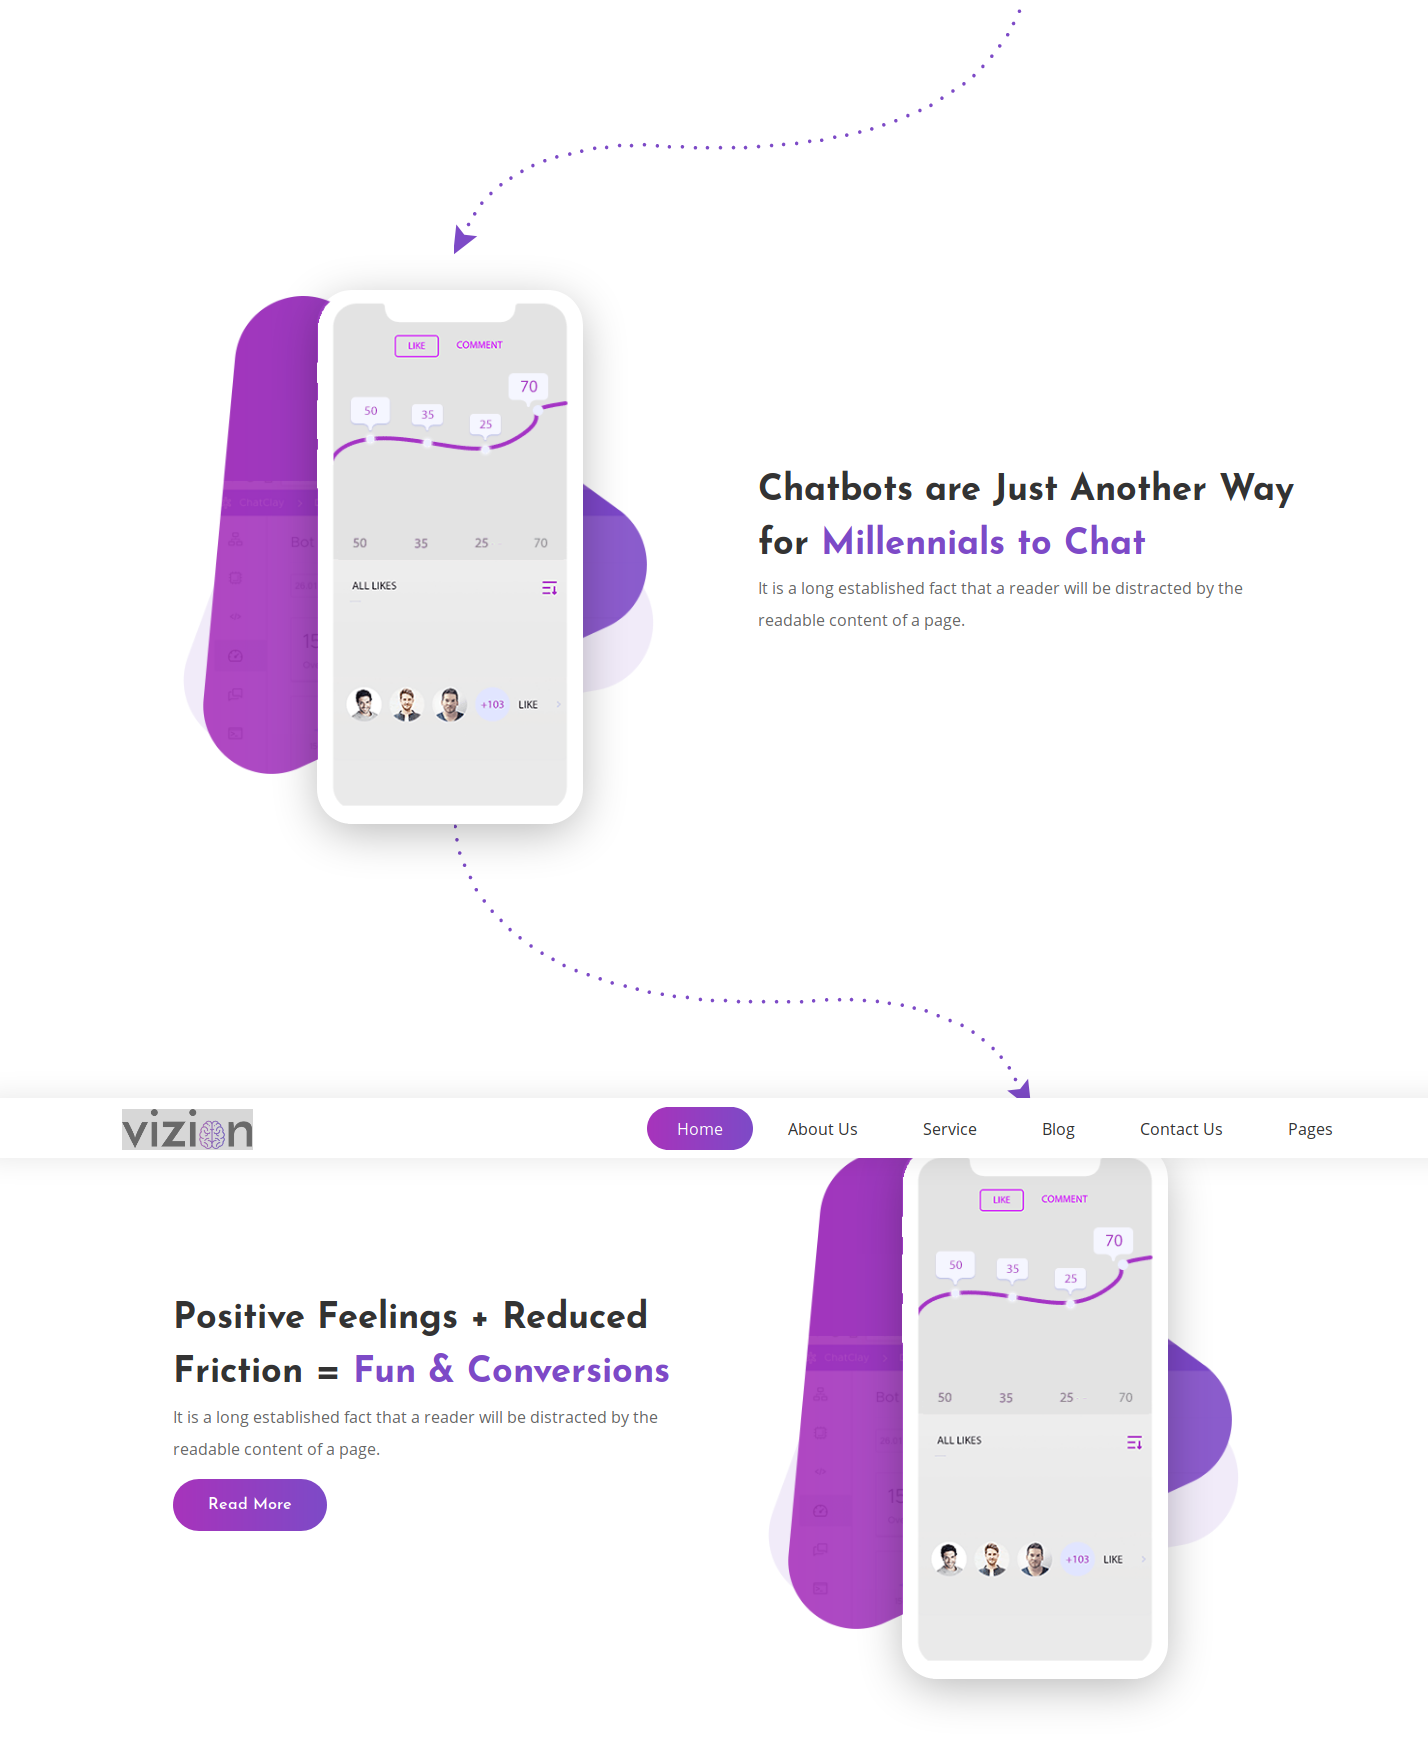 LiveChat   Vizion AI Stratups   Iqonic Design  10 Must-Have WordPress Plugins For Your Business Website in 2021 1 fgd9osa4TkmF3AlcCInvZQ